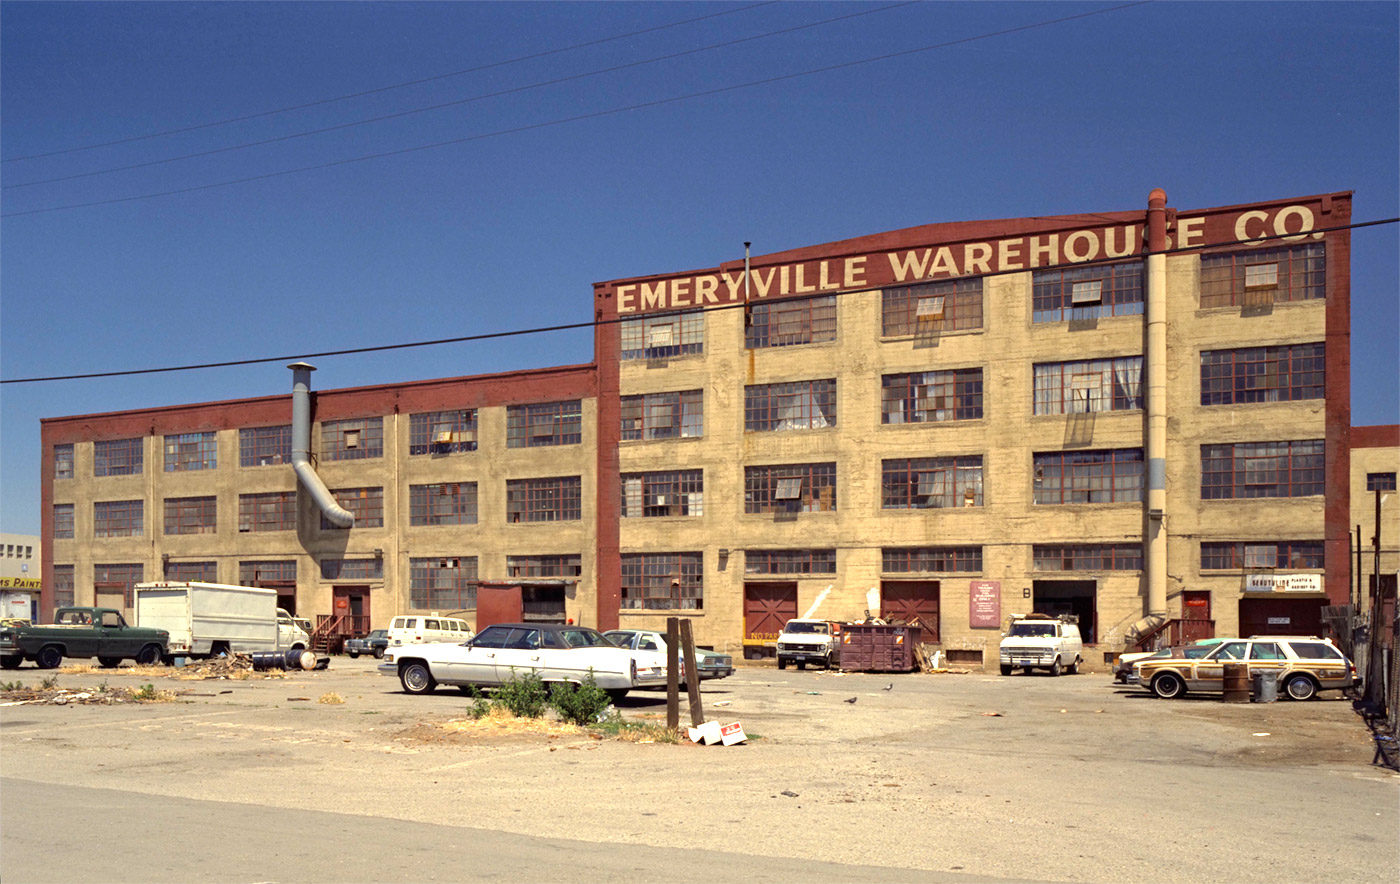 Emeryville Warehouse Co., early 1990's